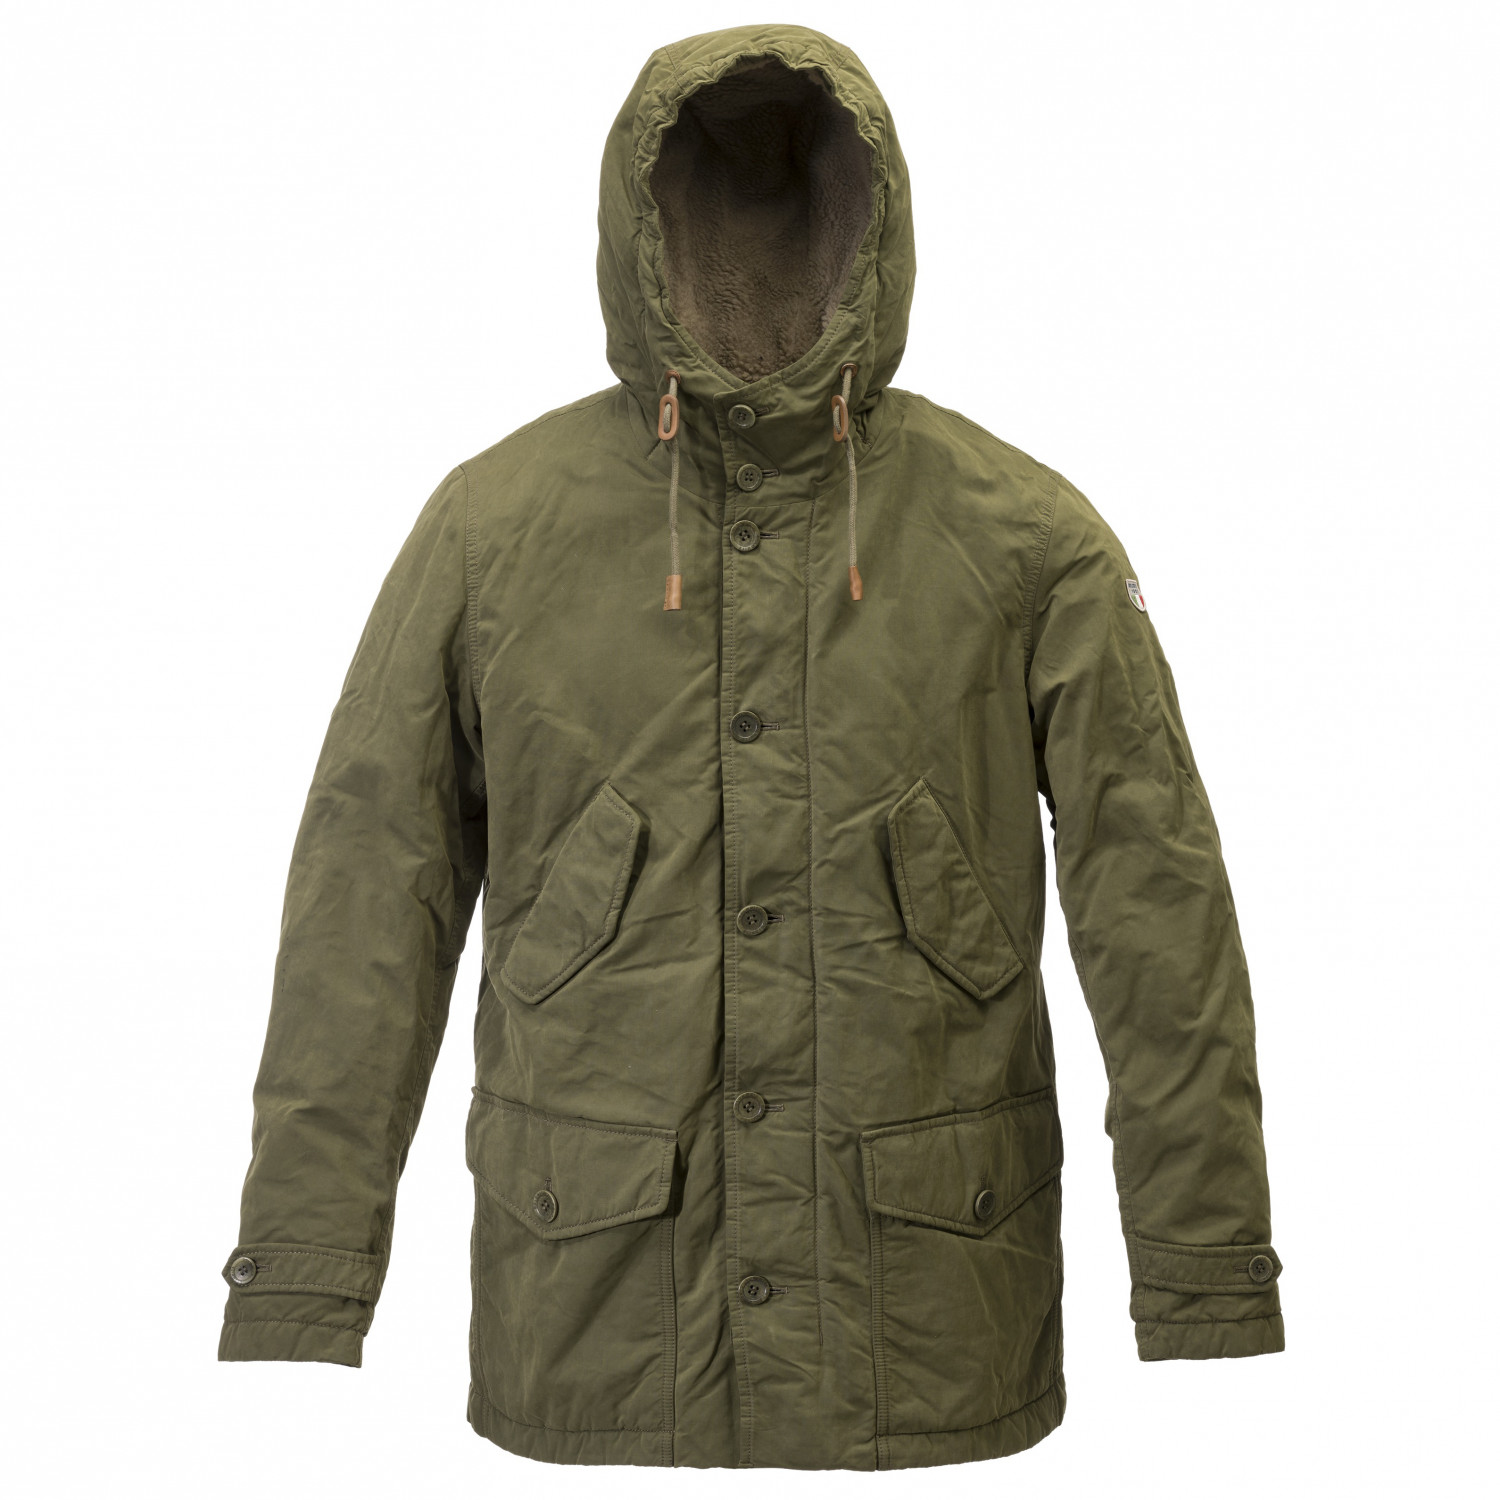 cheap for discount huge inventory cost charm Dolomite - Parka Sessanta Scout MPK - Giacca invernale